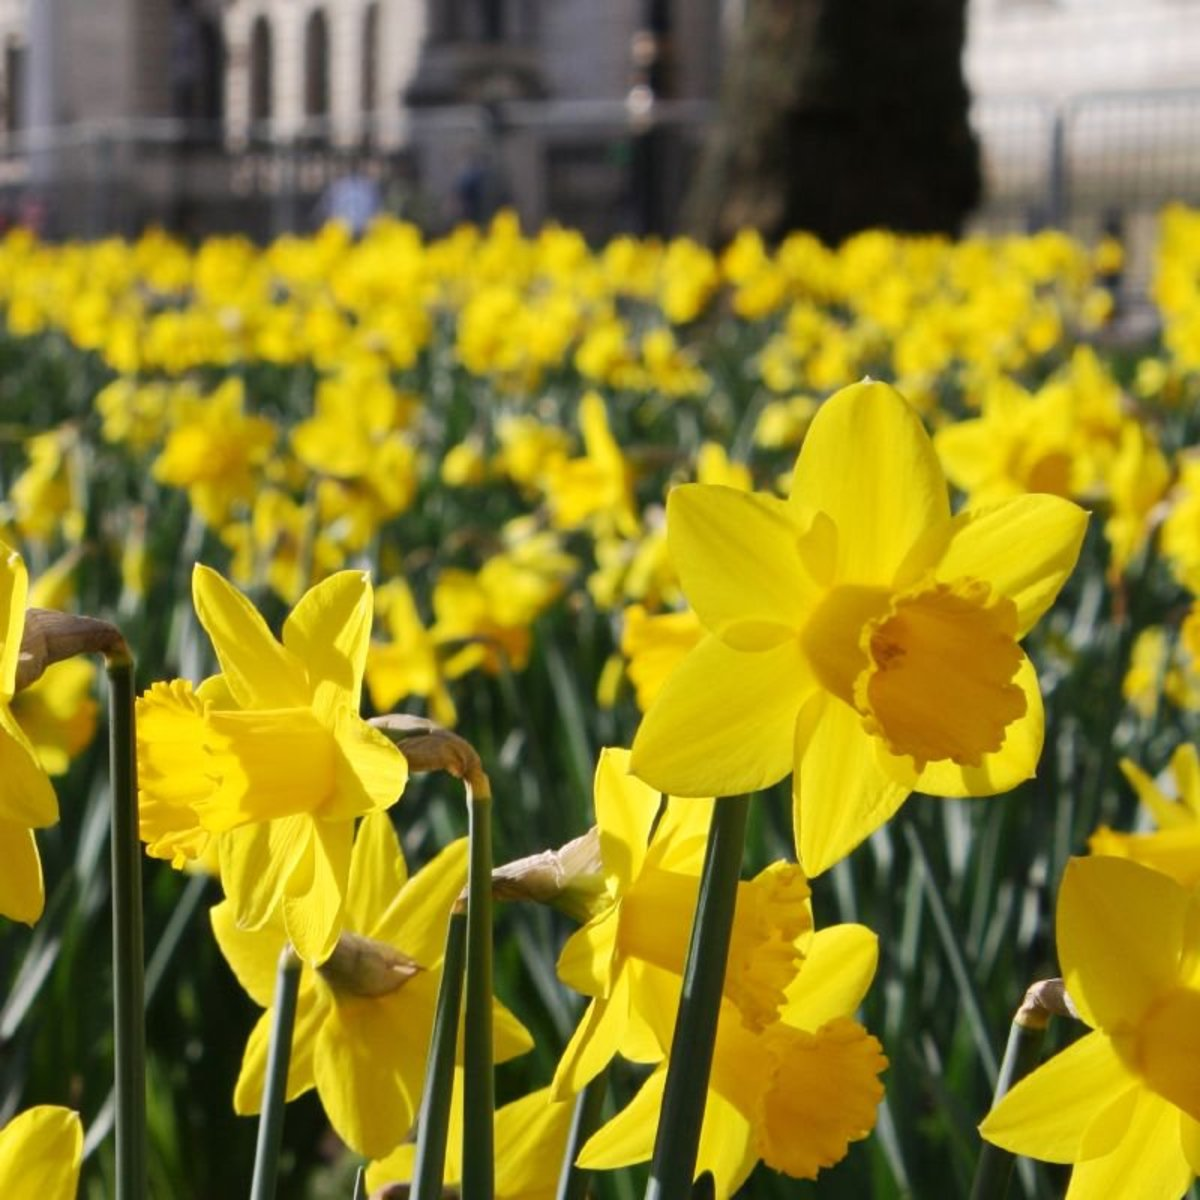 Daffodils are common spring flowers.